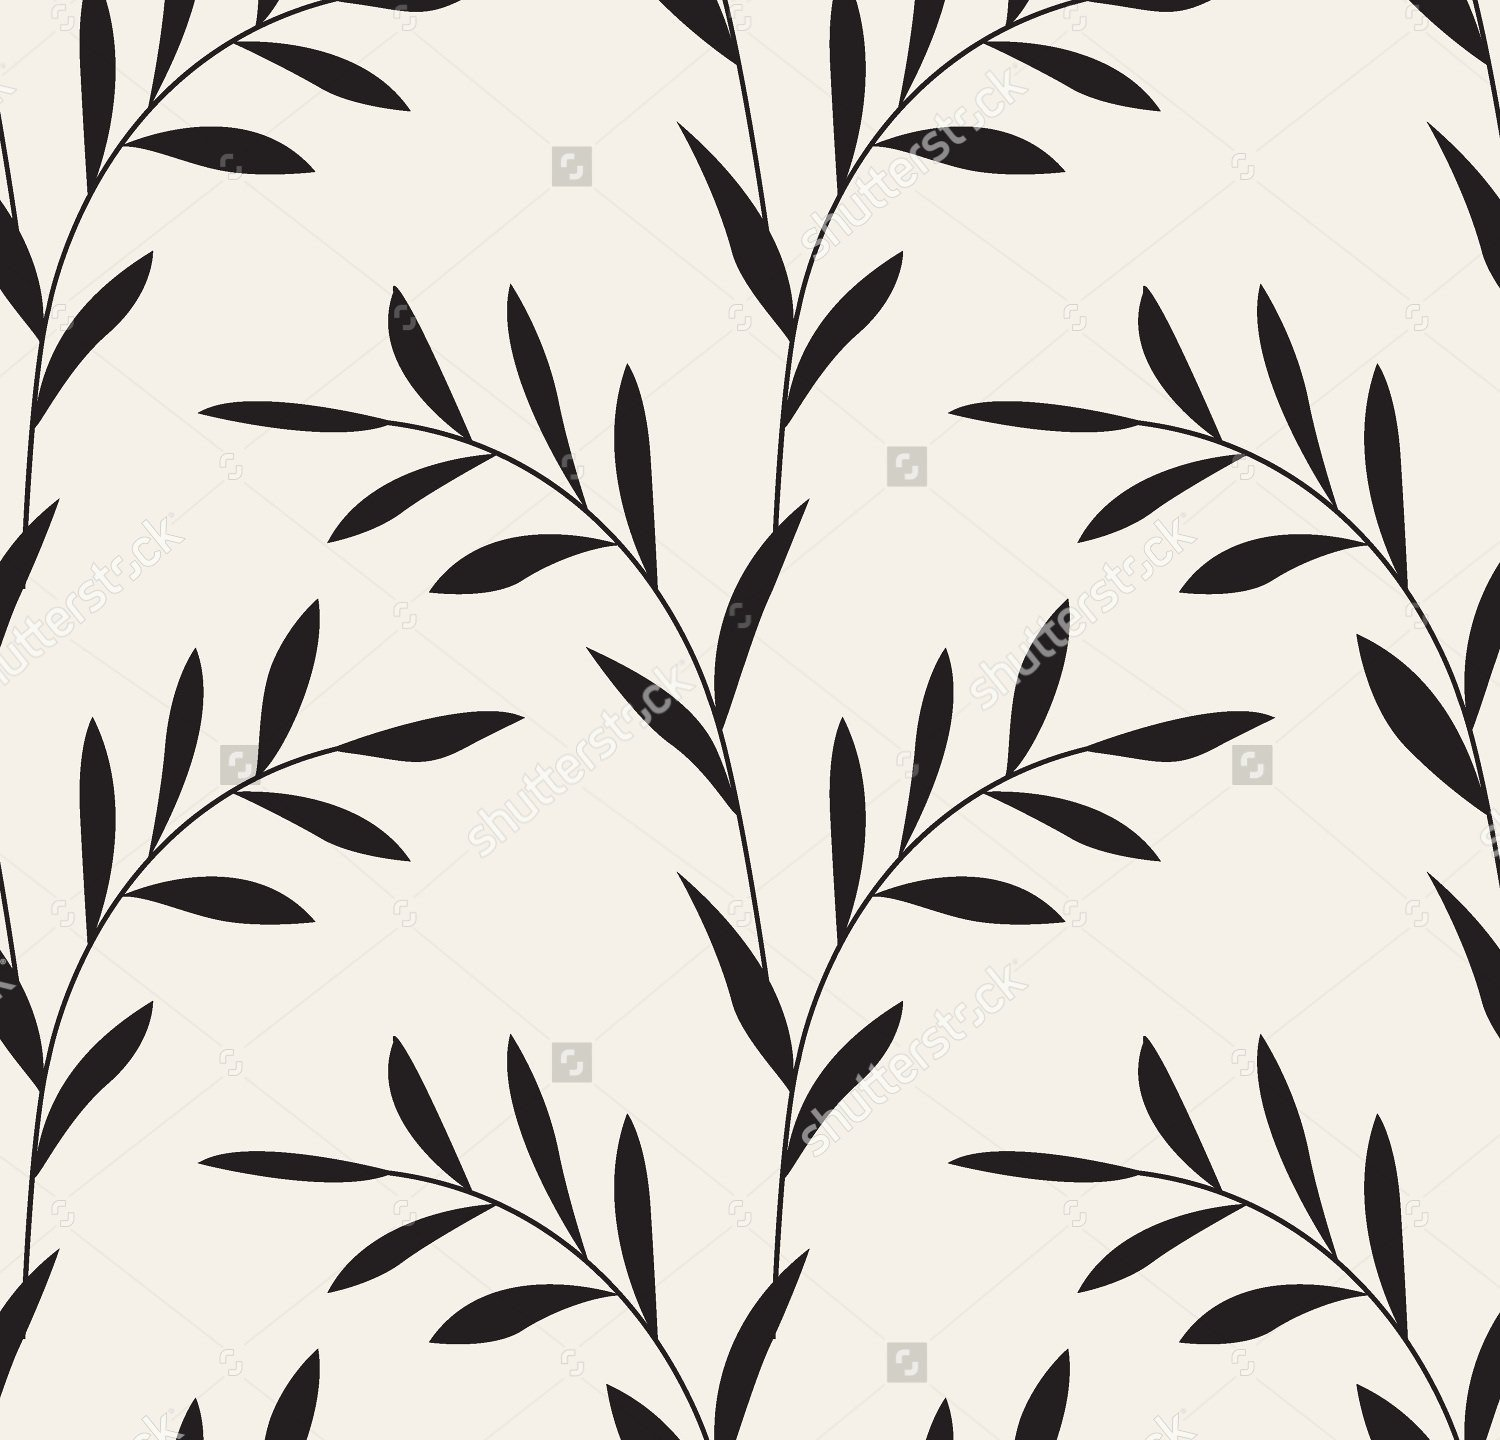 Patterns Black and White 21 Leaf Design Patterns Textures Backgrounds